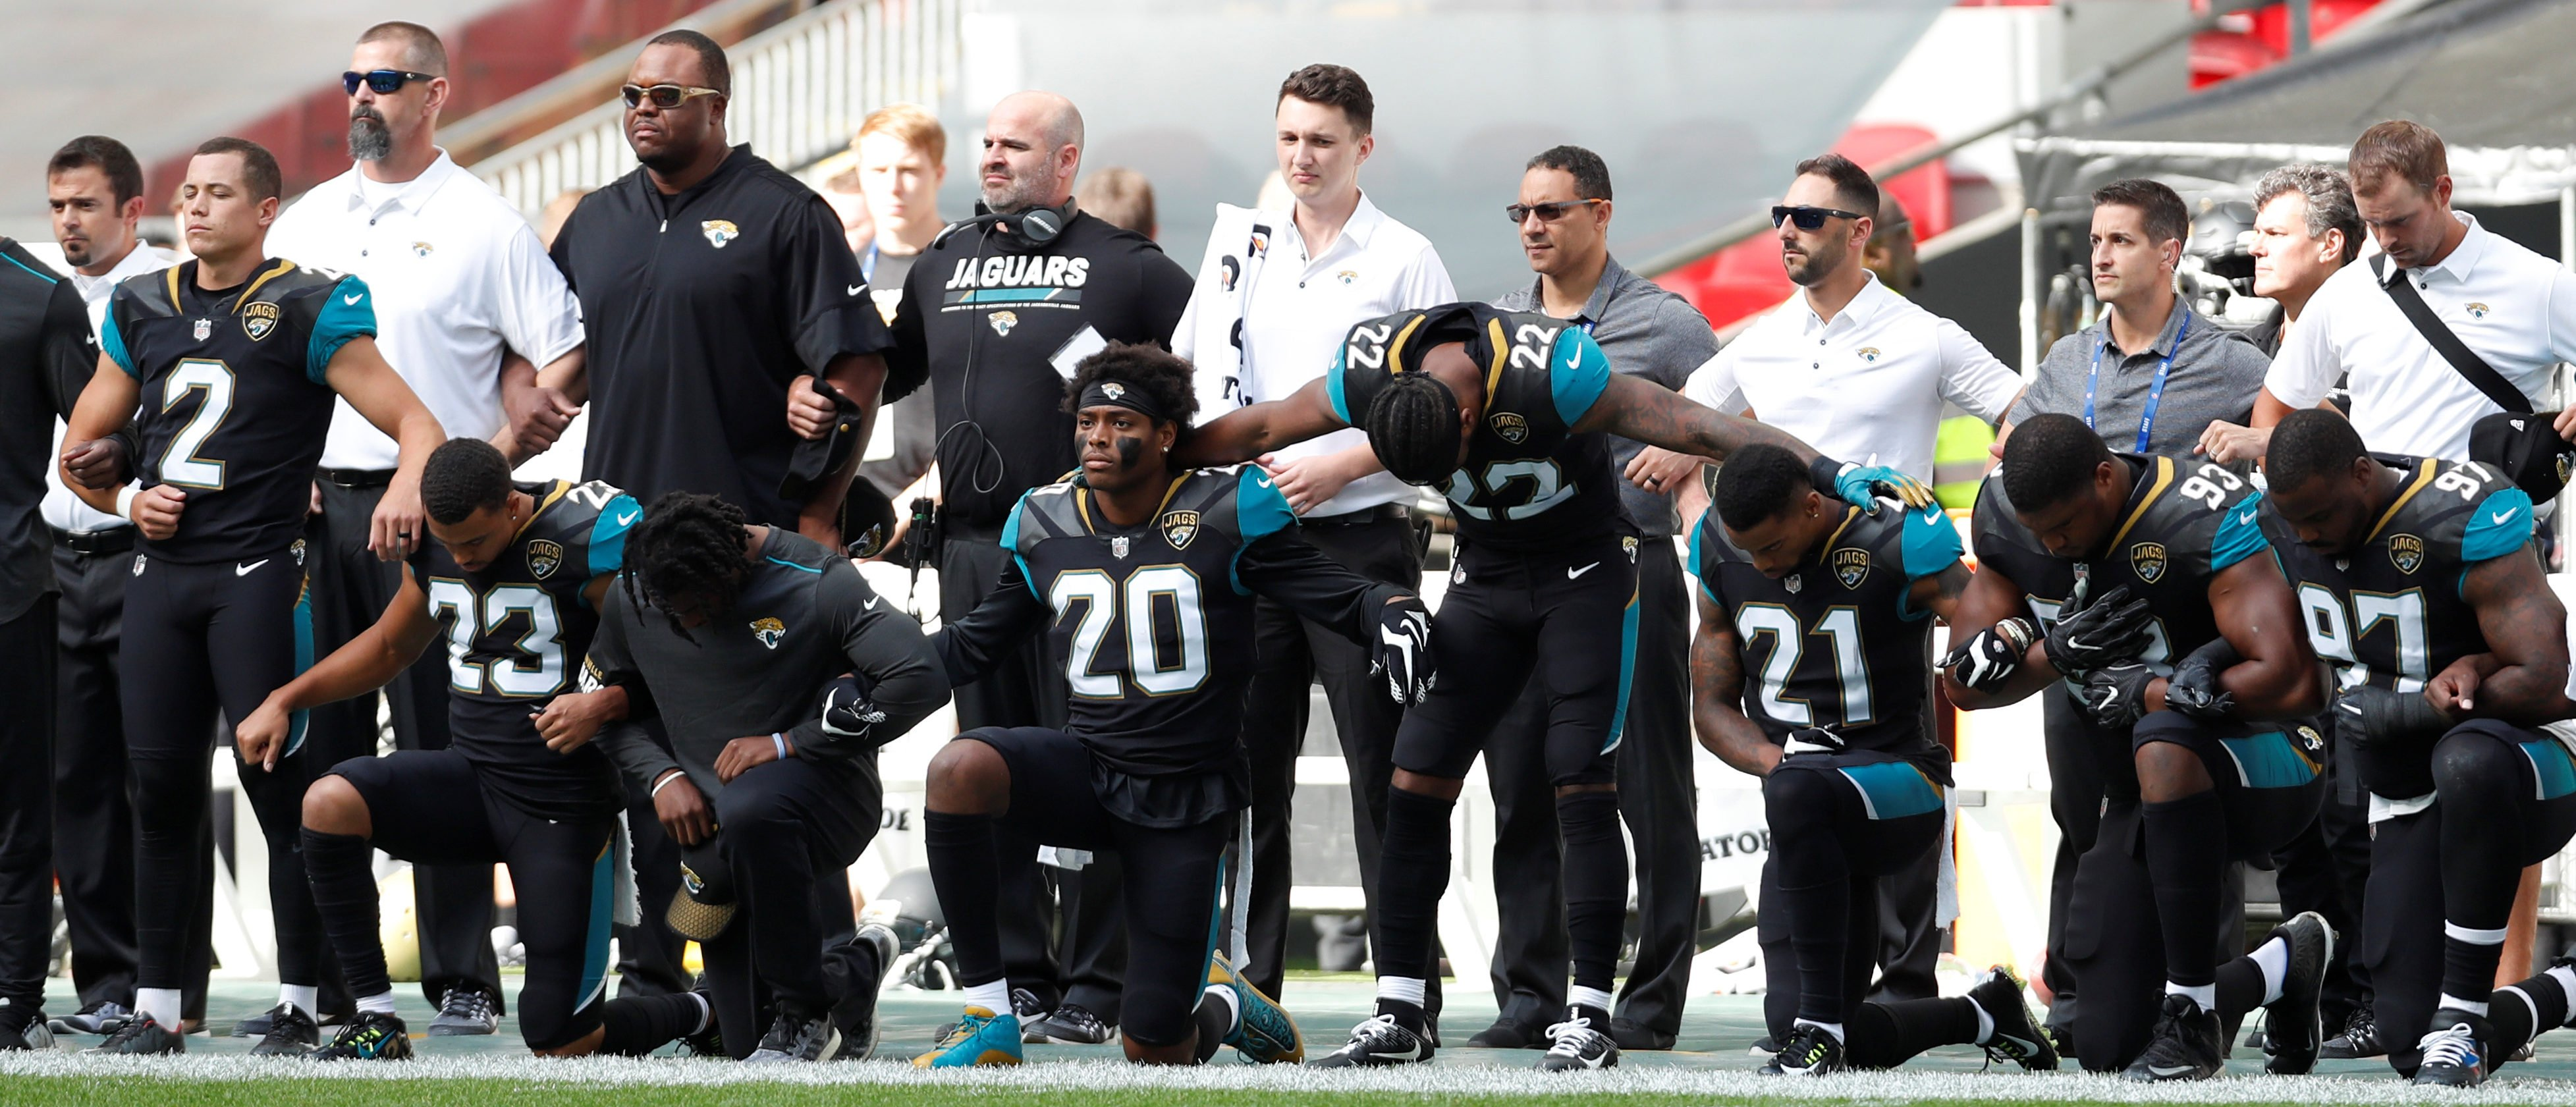 NFL players controversially kneel during the national anthem via Reuters